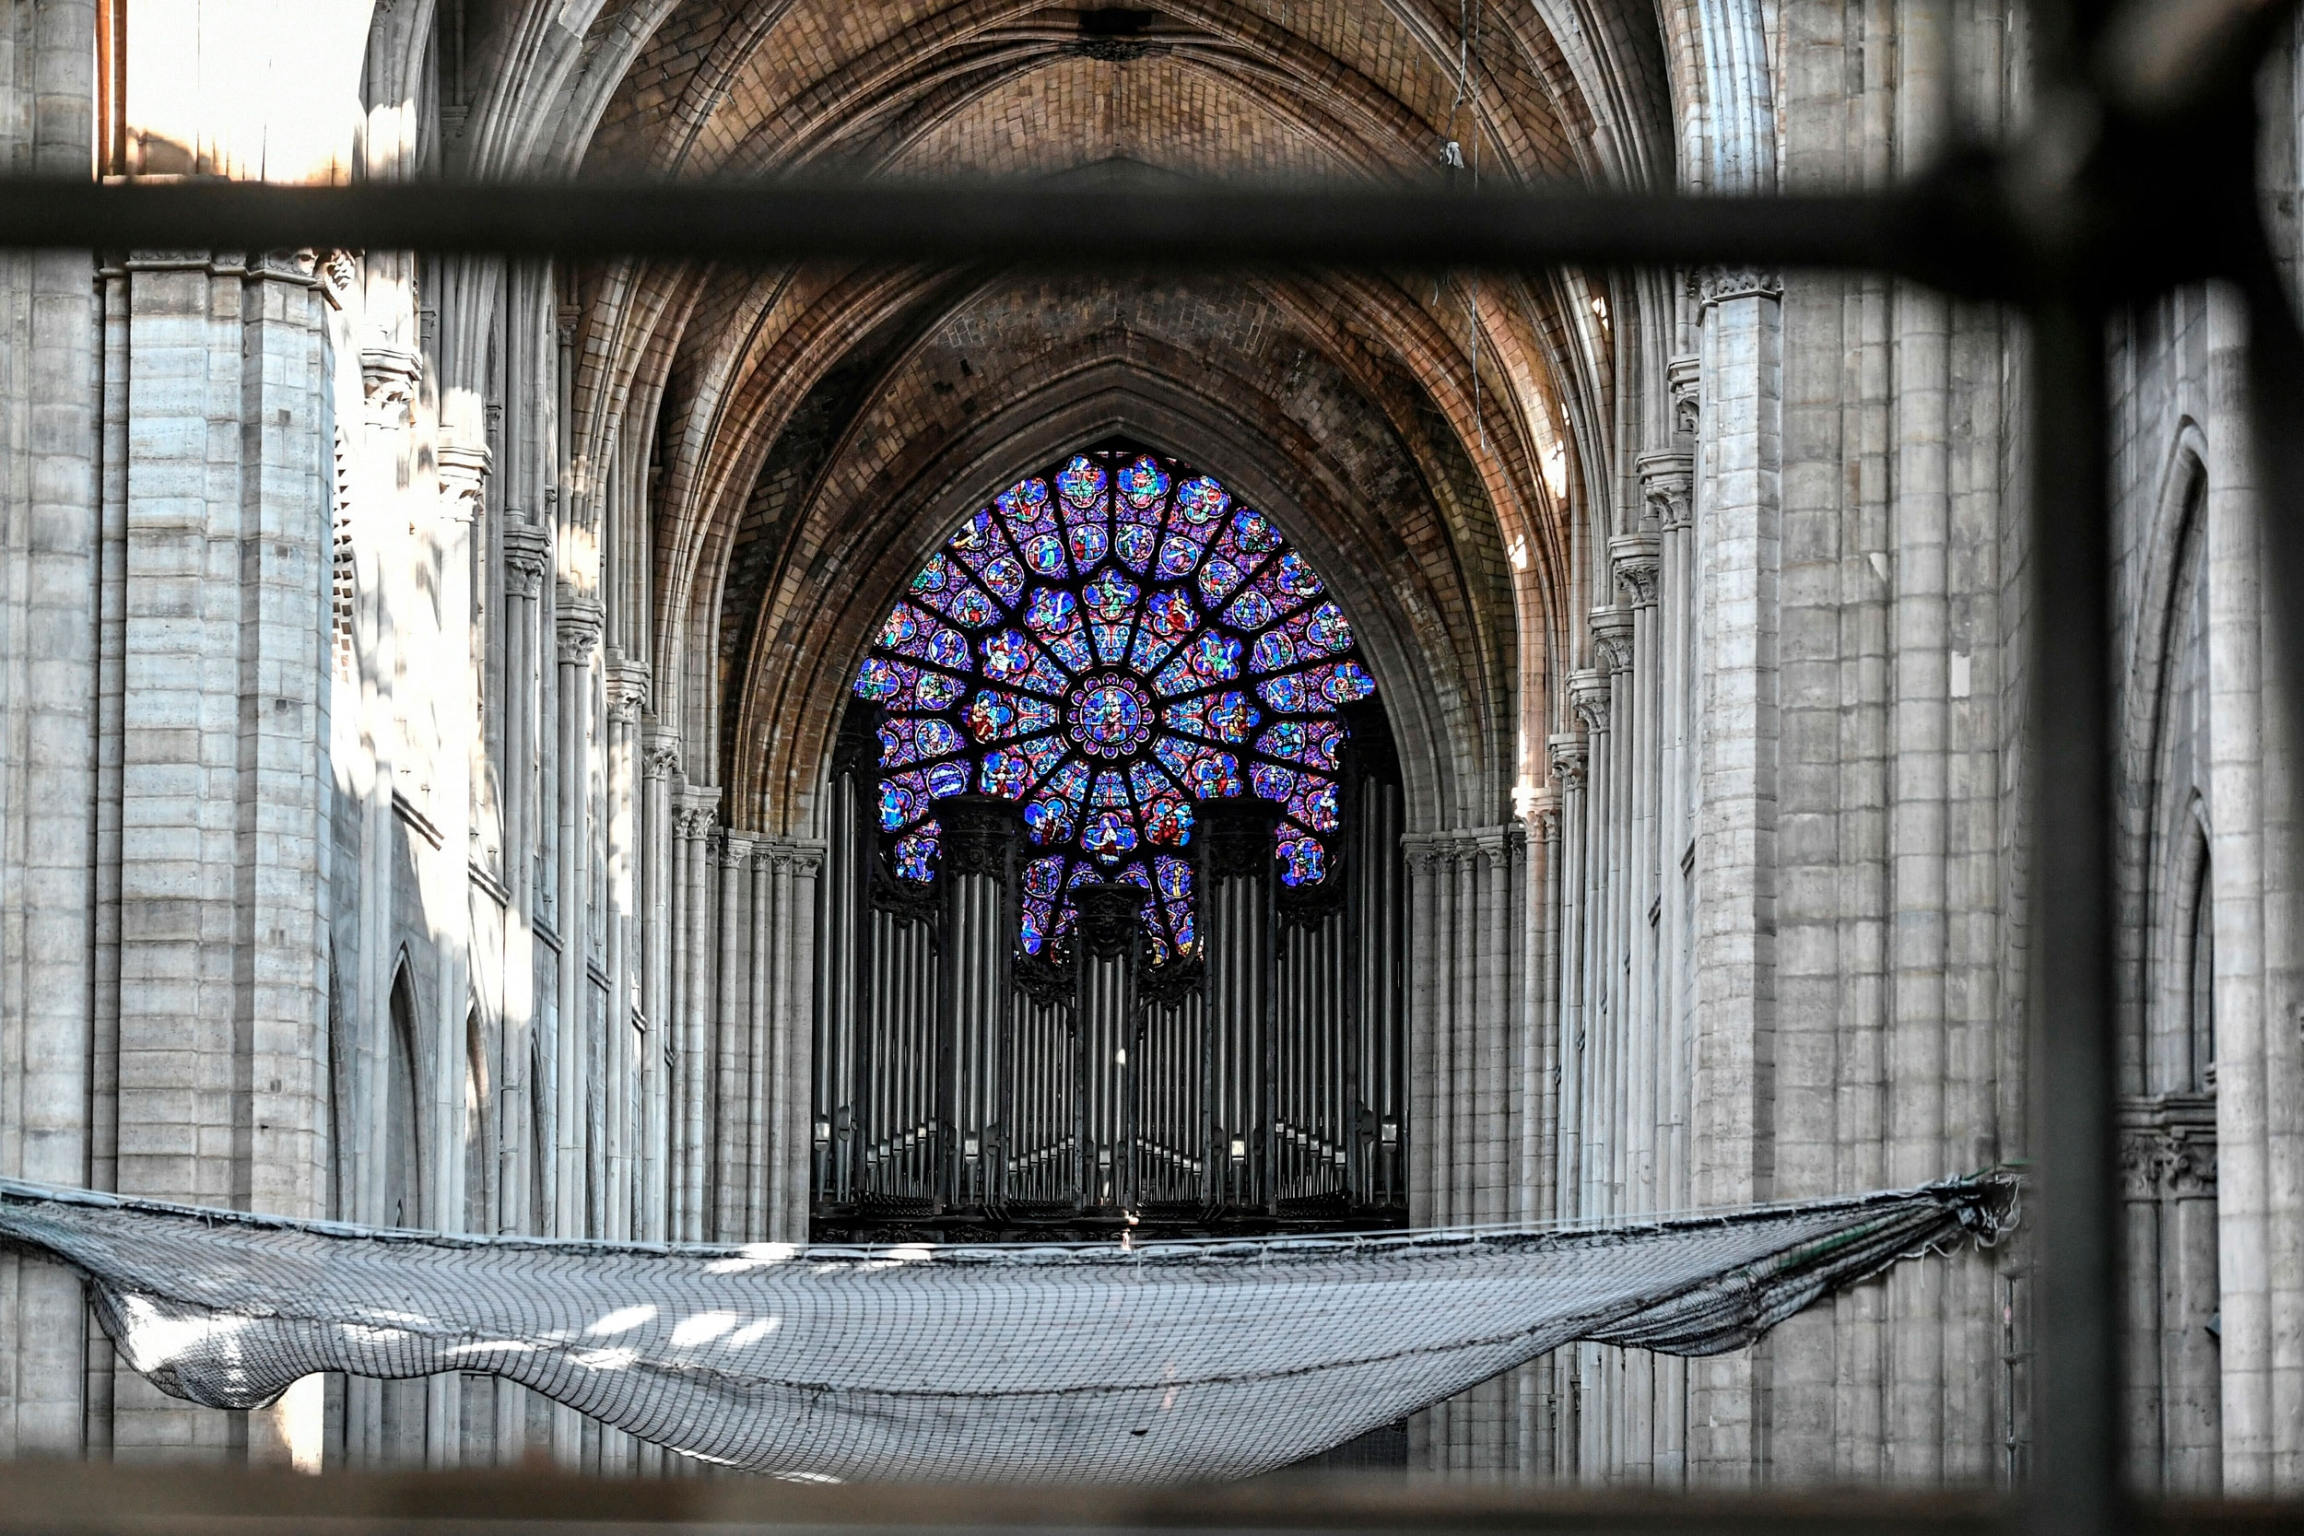 A wall of silver pipes are shown underneath stained-glass windows  in the santuary of Notre-Dame cathedral.